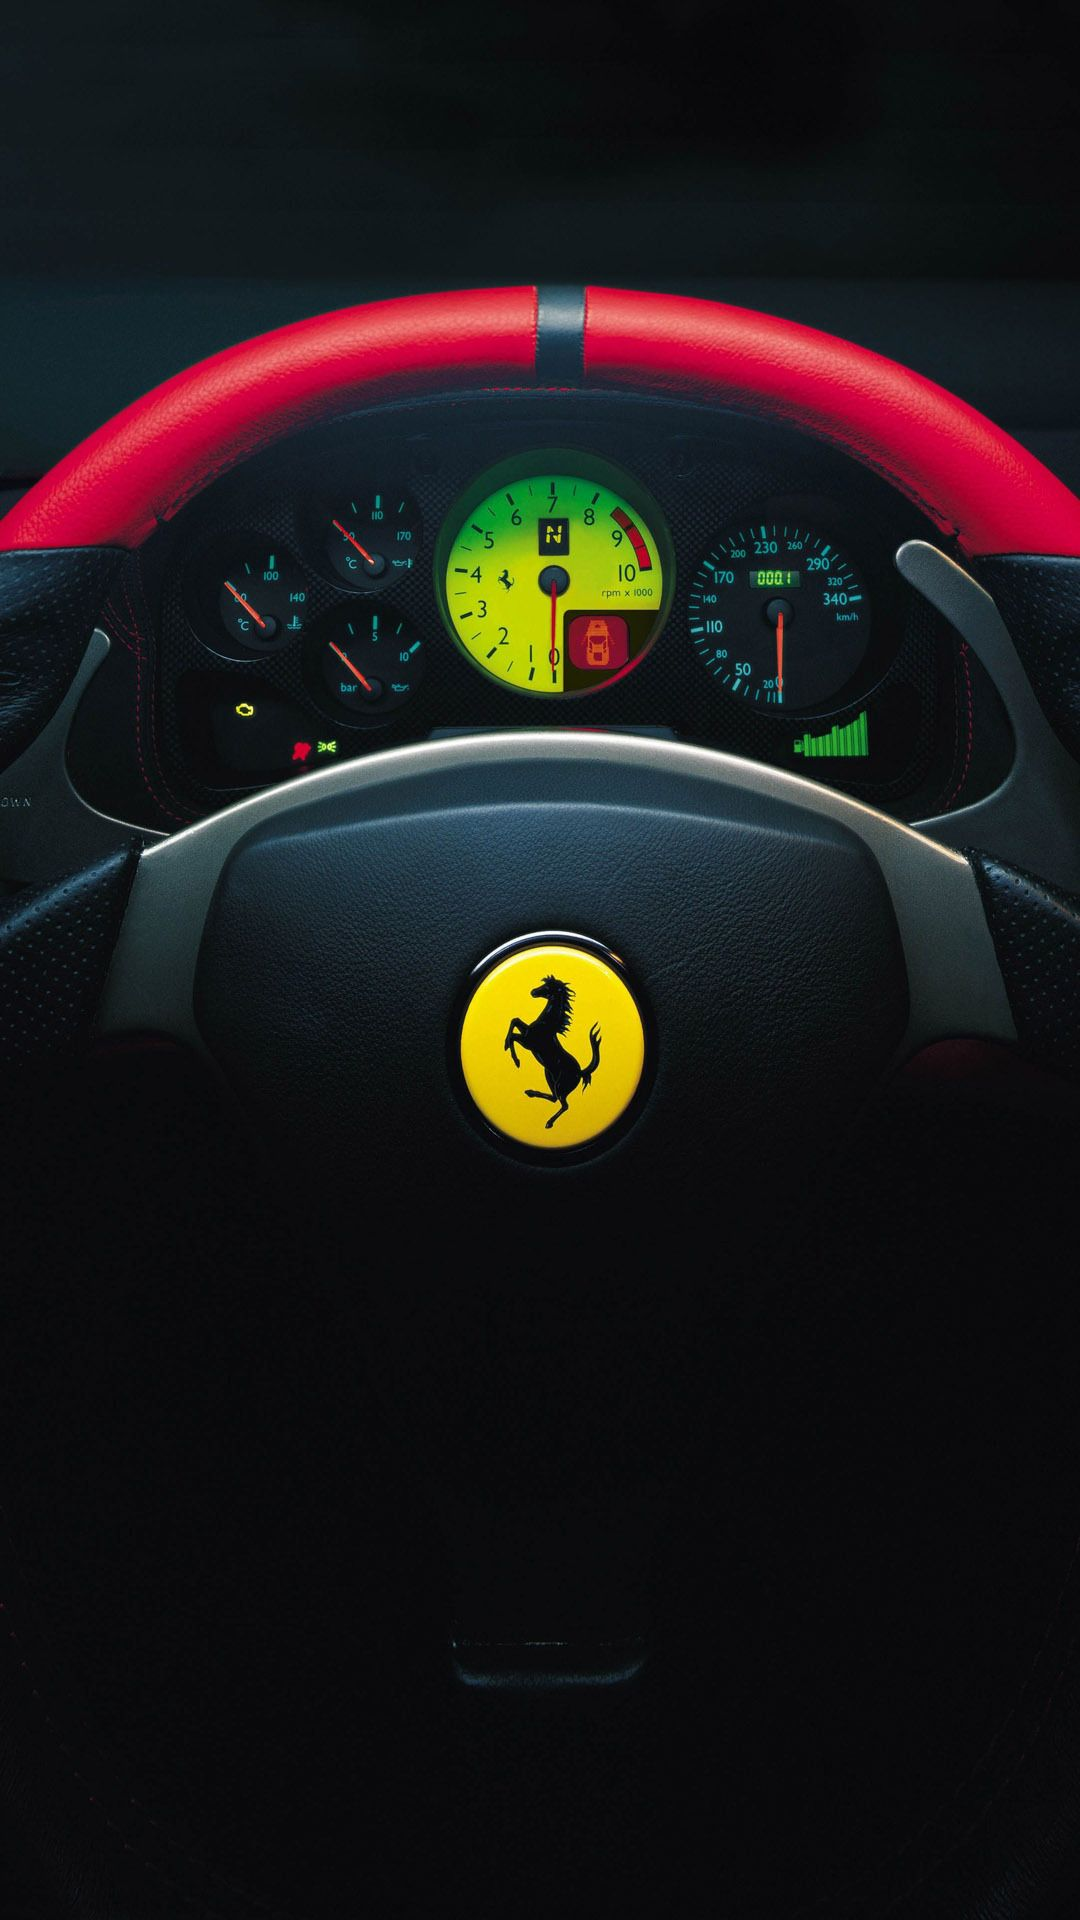 Wallpaper iphone ferrari - Ferrari Stradale Steering Wheel High Quality Htc One Wallpapers And Abstract Backgrounds Designed By The Best And Creative Artists In The World